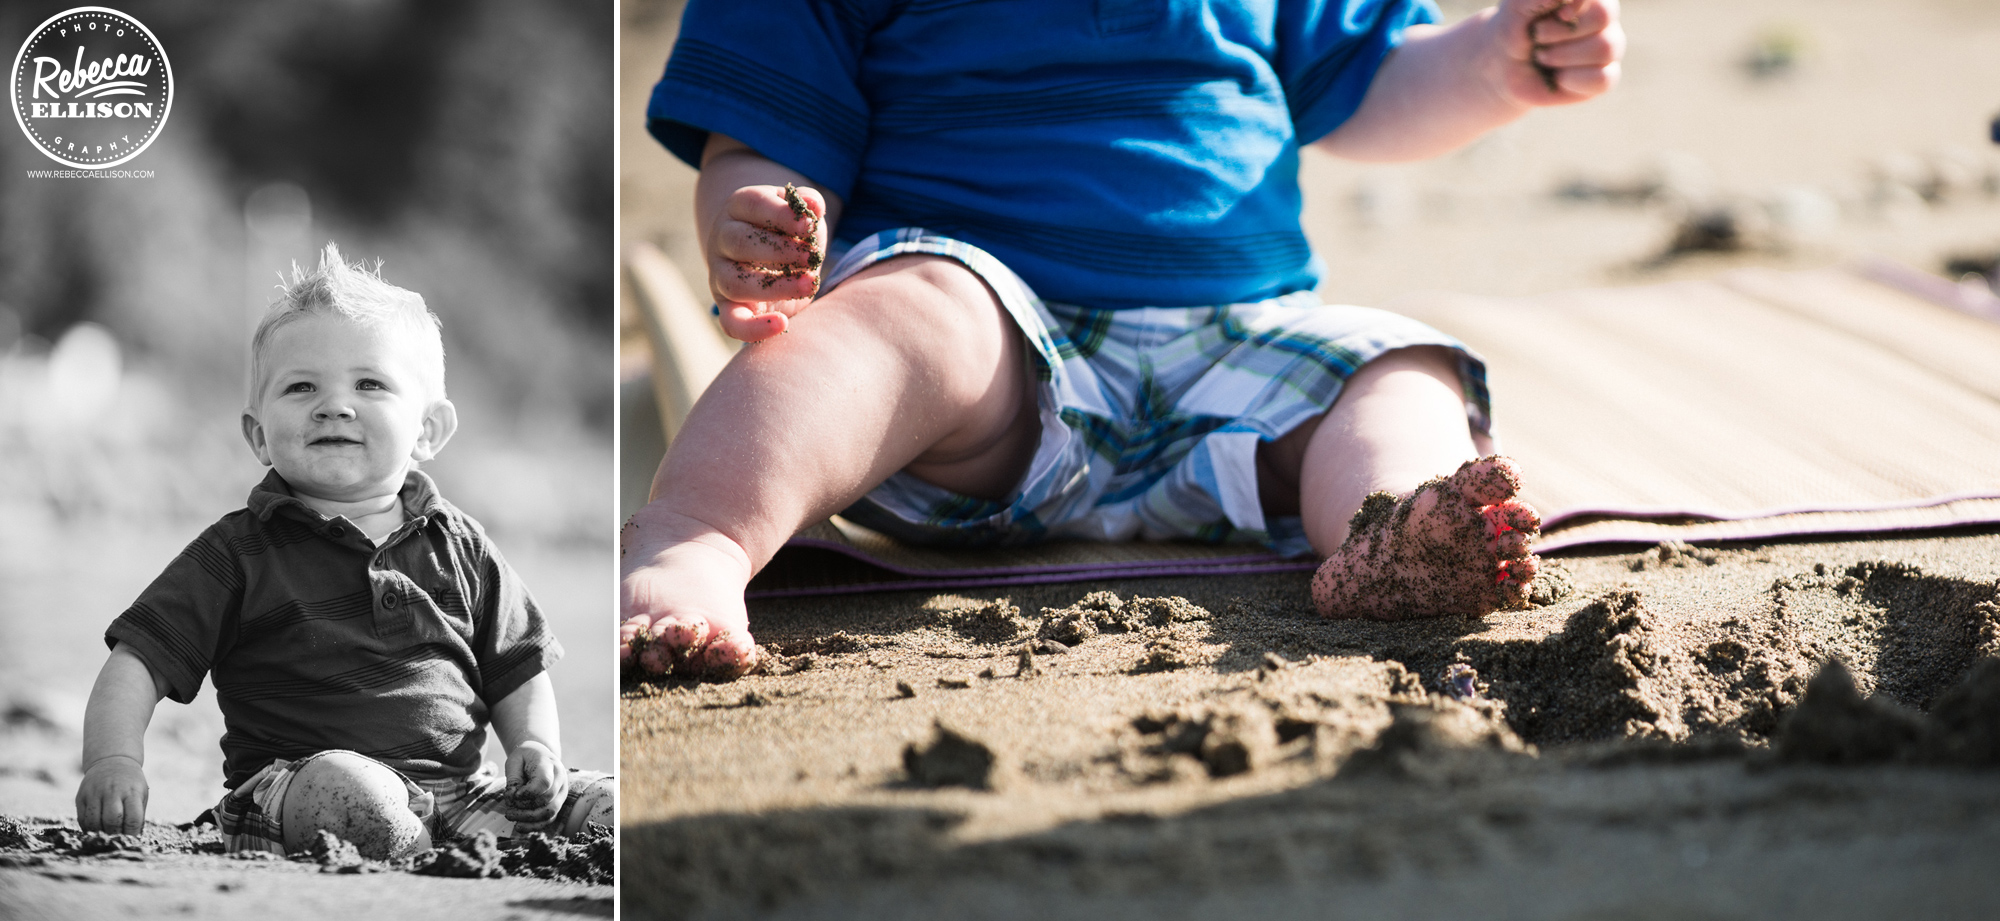 Boy playing in the sand at Howarth Park Photographed by Everett child photographer Rebecca Ellison